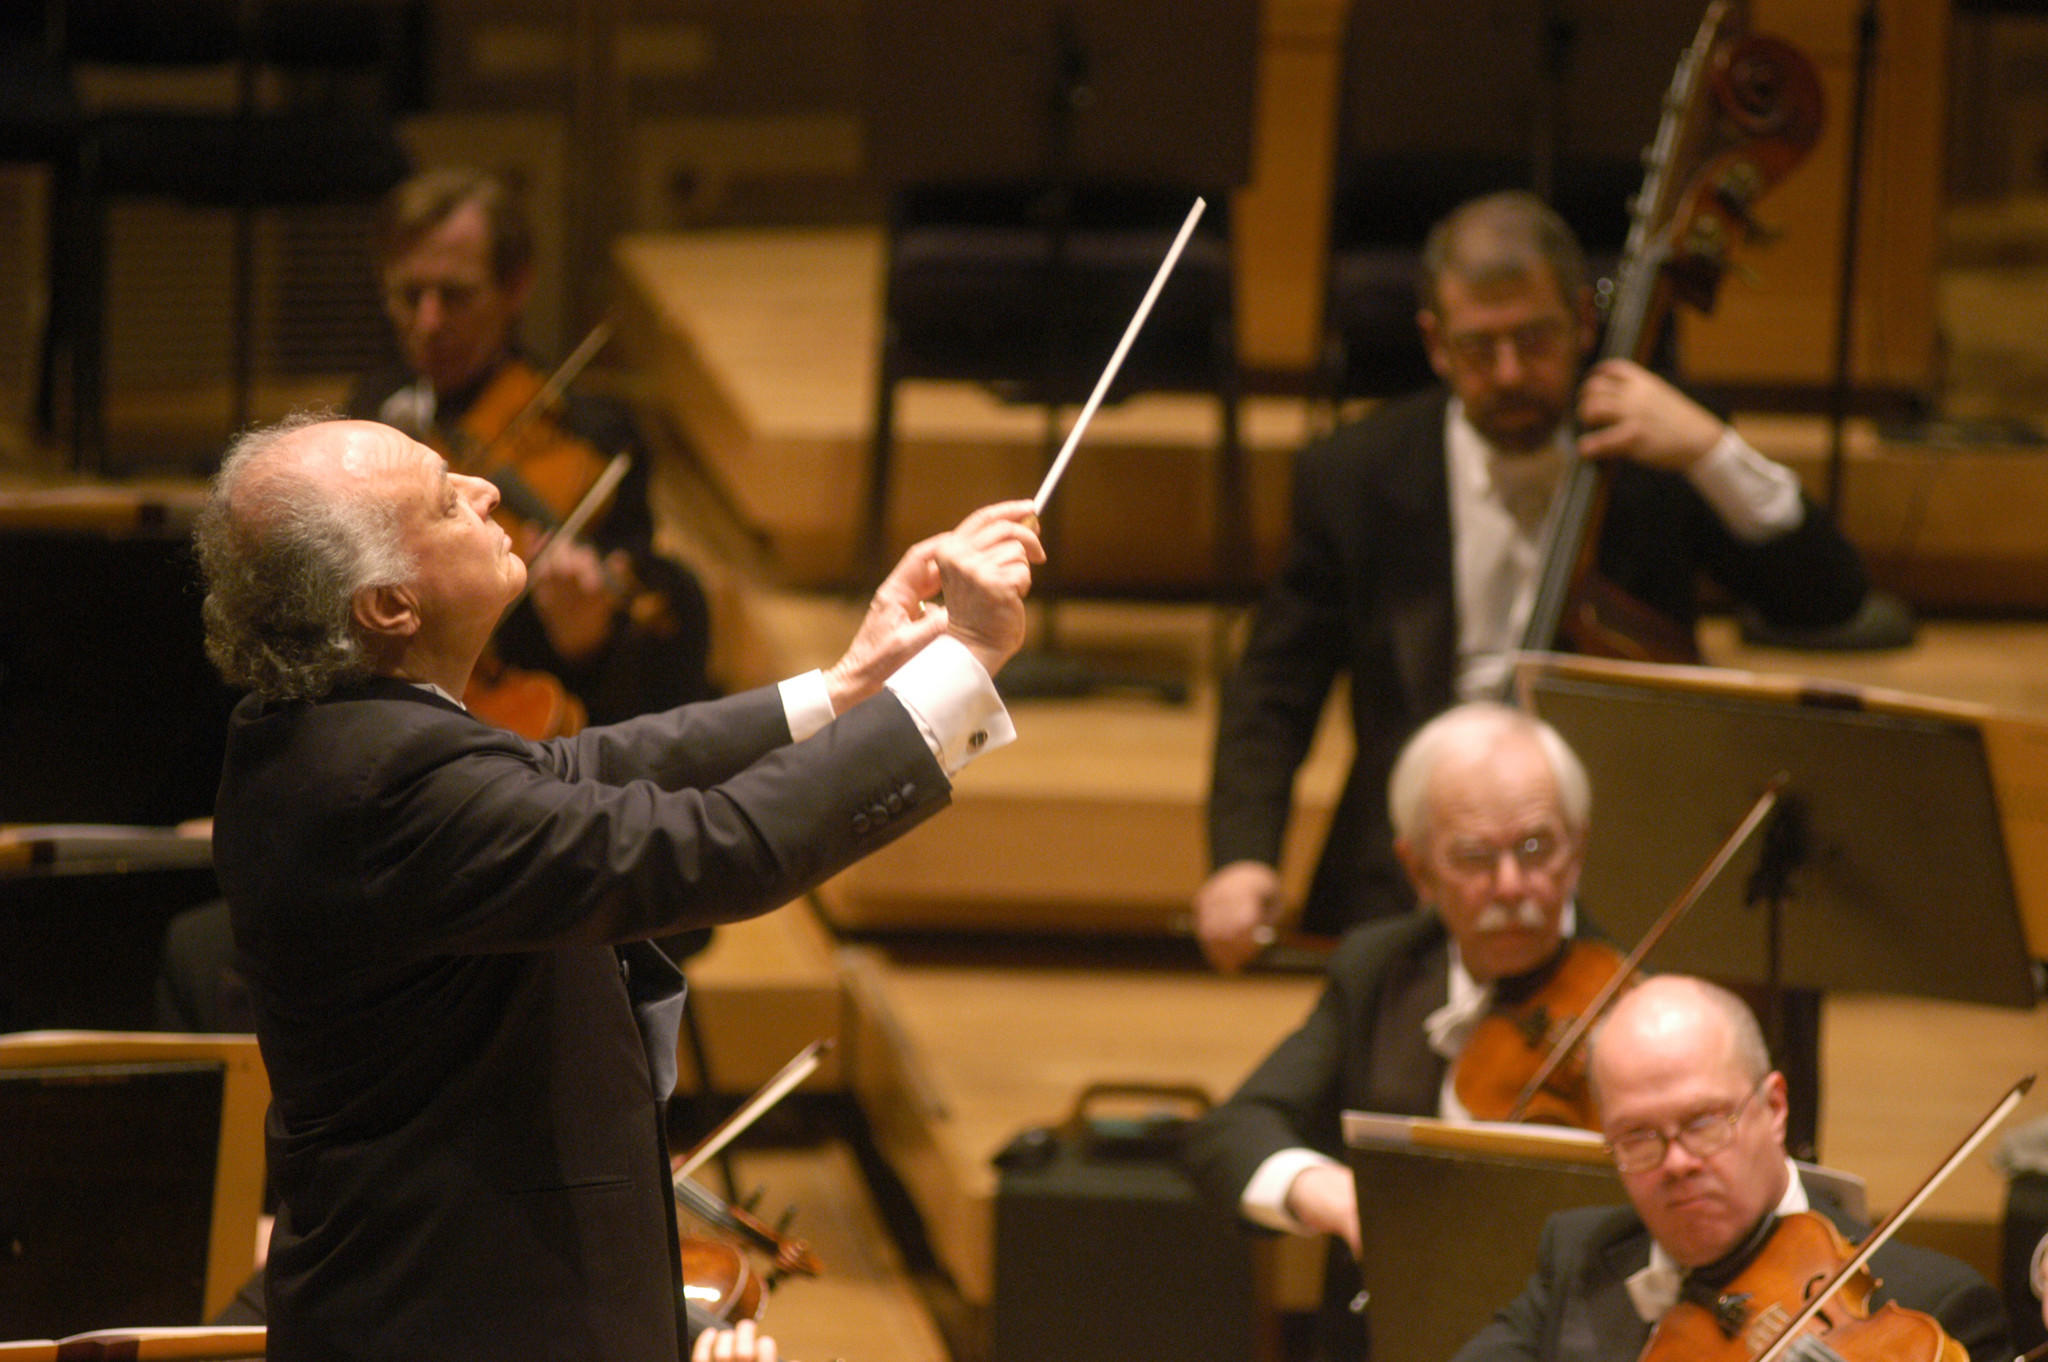 Guest Conductor Lorin Maazel leads the Chicago Symphony Orchestra during Brahms Serenade No. 2 in A Major, Op. 16, at Symphony Center February 10, 2005.